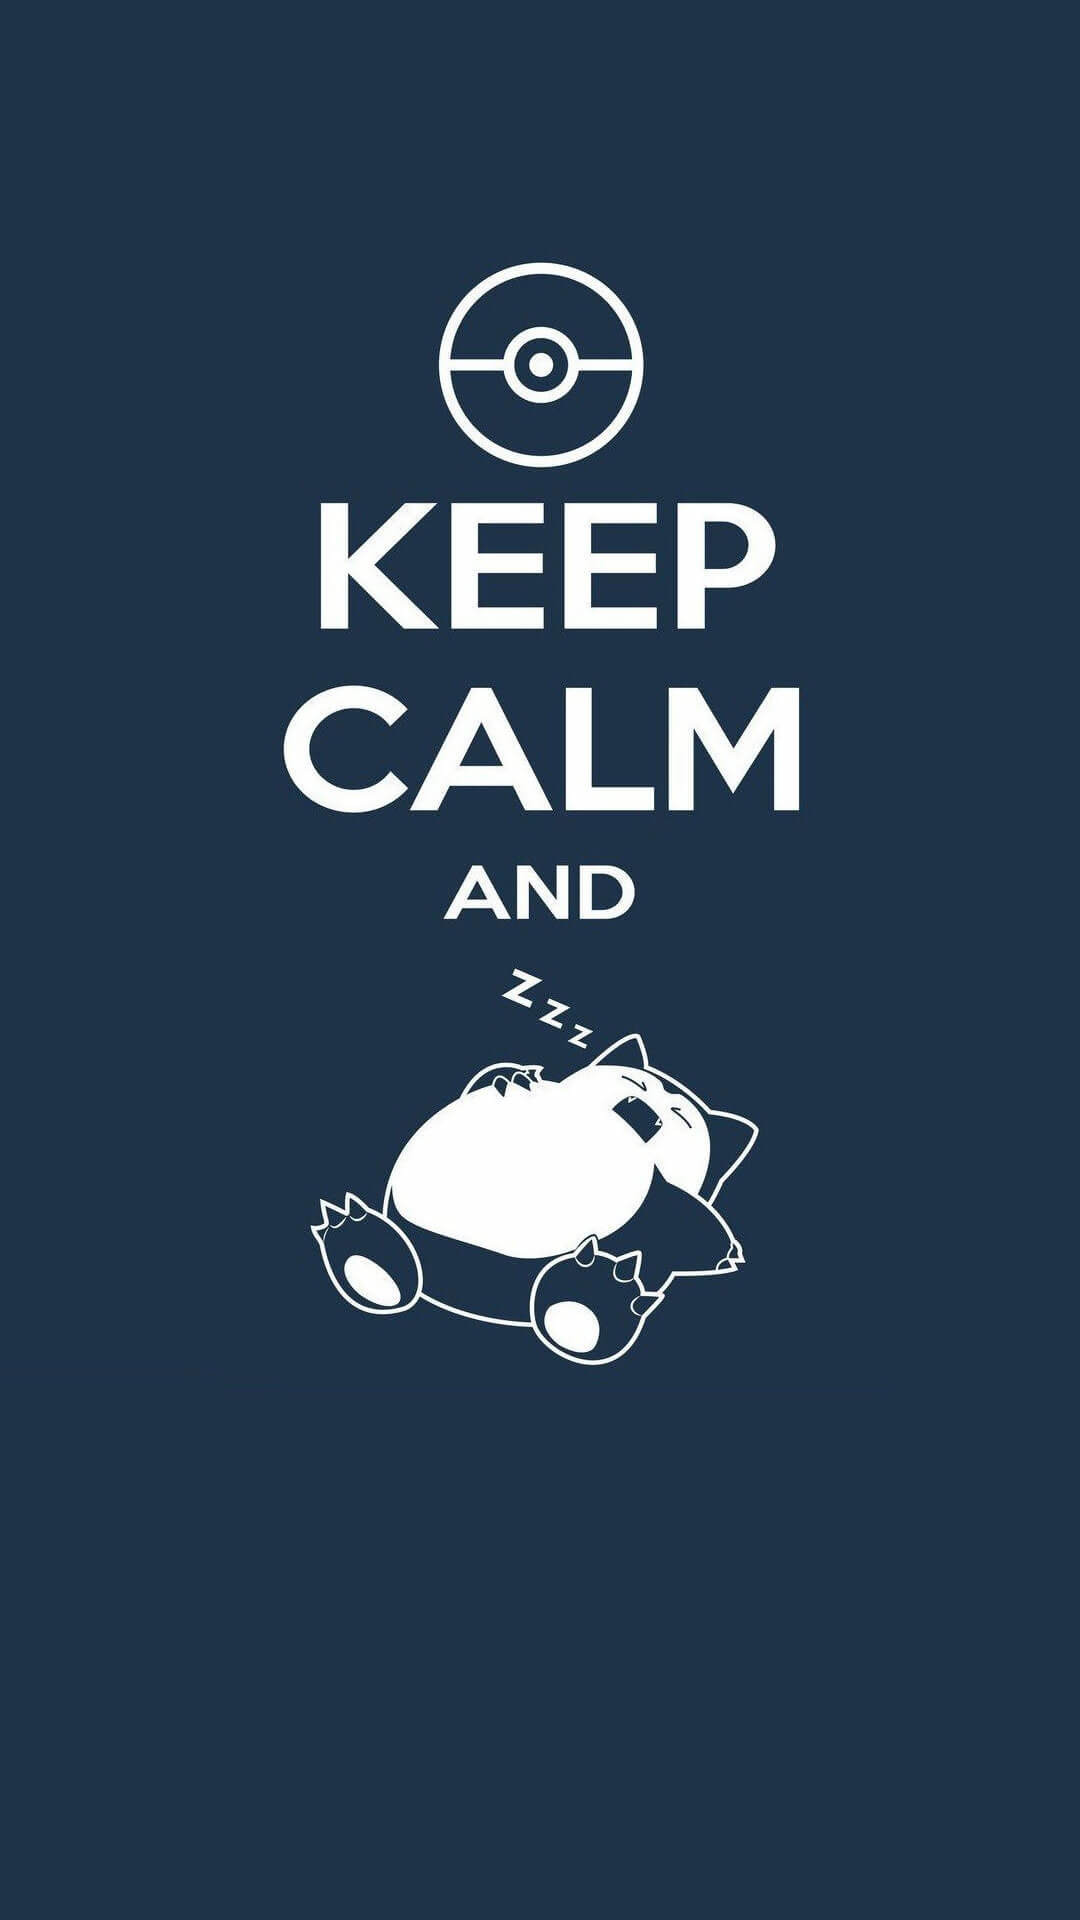 1080x1920 How to download HD Keep calm Panda iPhone Wallpaper:-